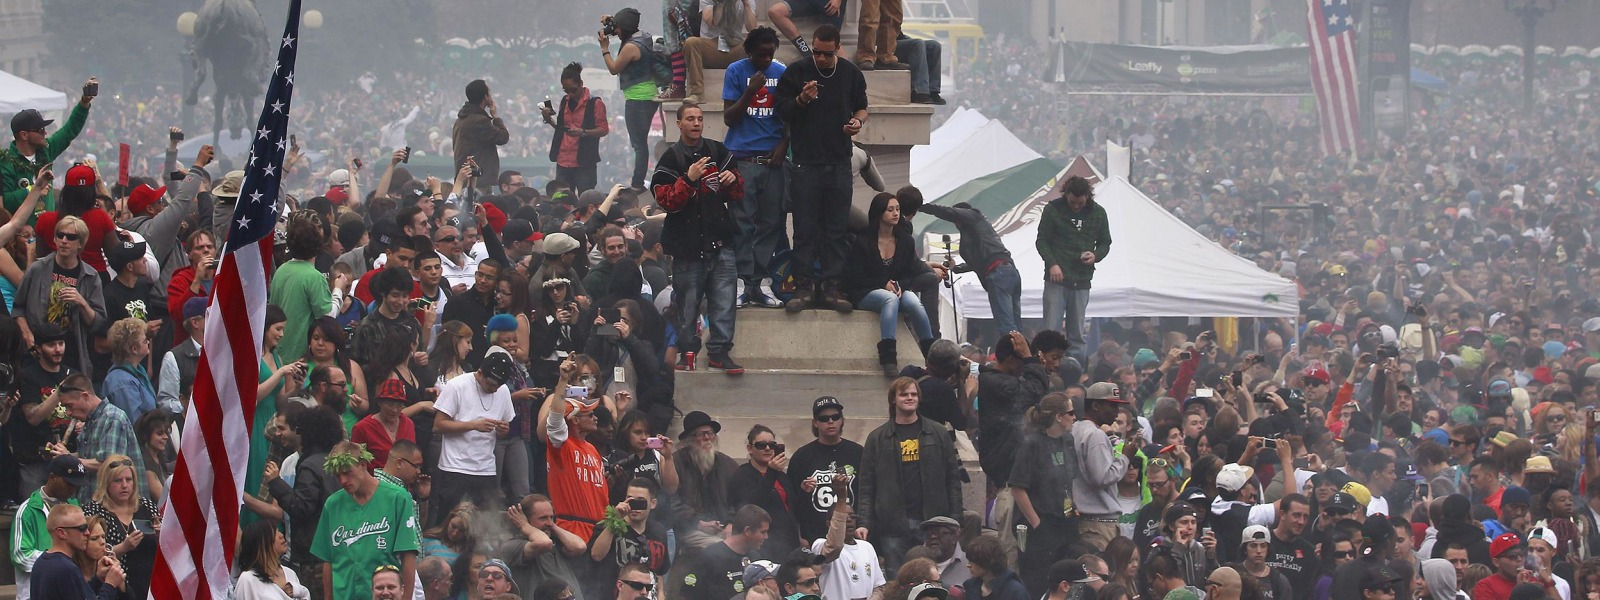 Image: Members of a crowd numbering tens of thousands smoke marijuana and listen to live music, at the Denver 420 pro-marijuana rally in 2013.